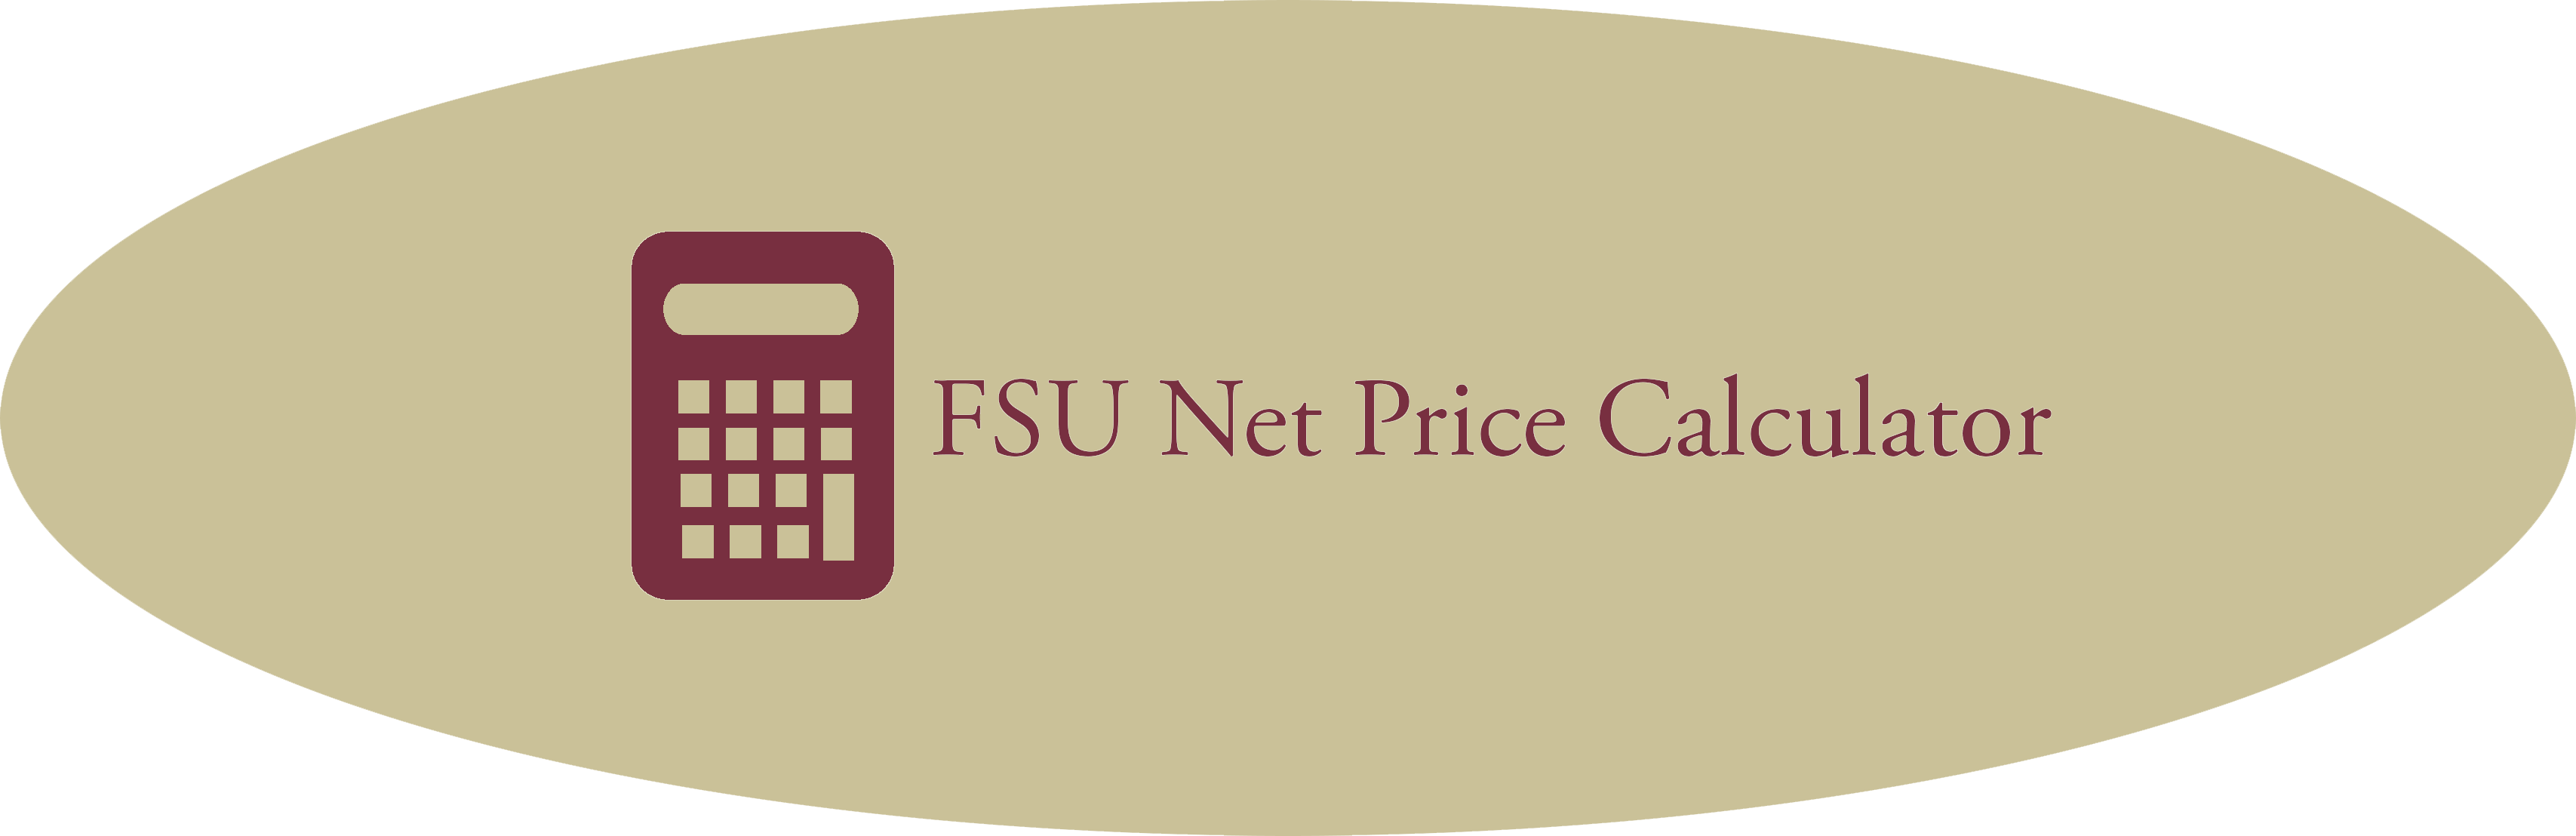 in addition to the budget estimates view term links on the left hand menu you may want to review the fsu net price calculator for an estimate of costs